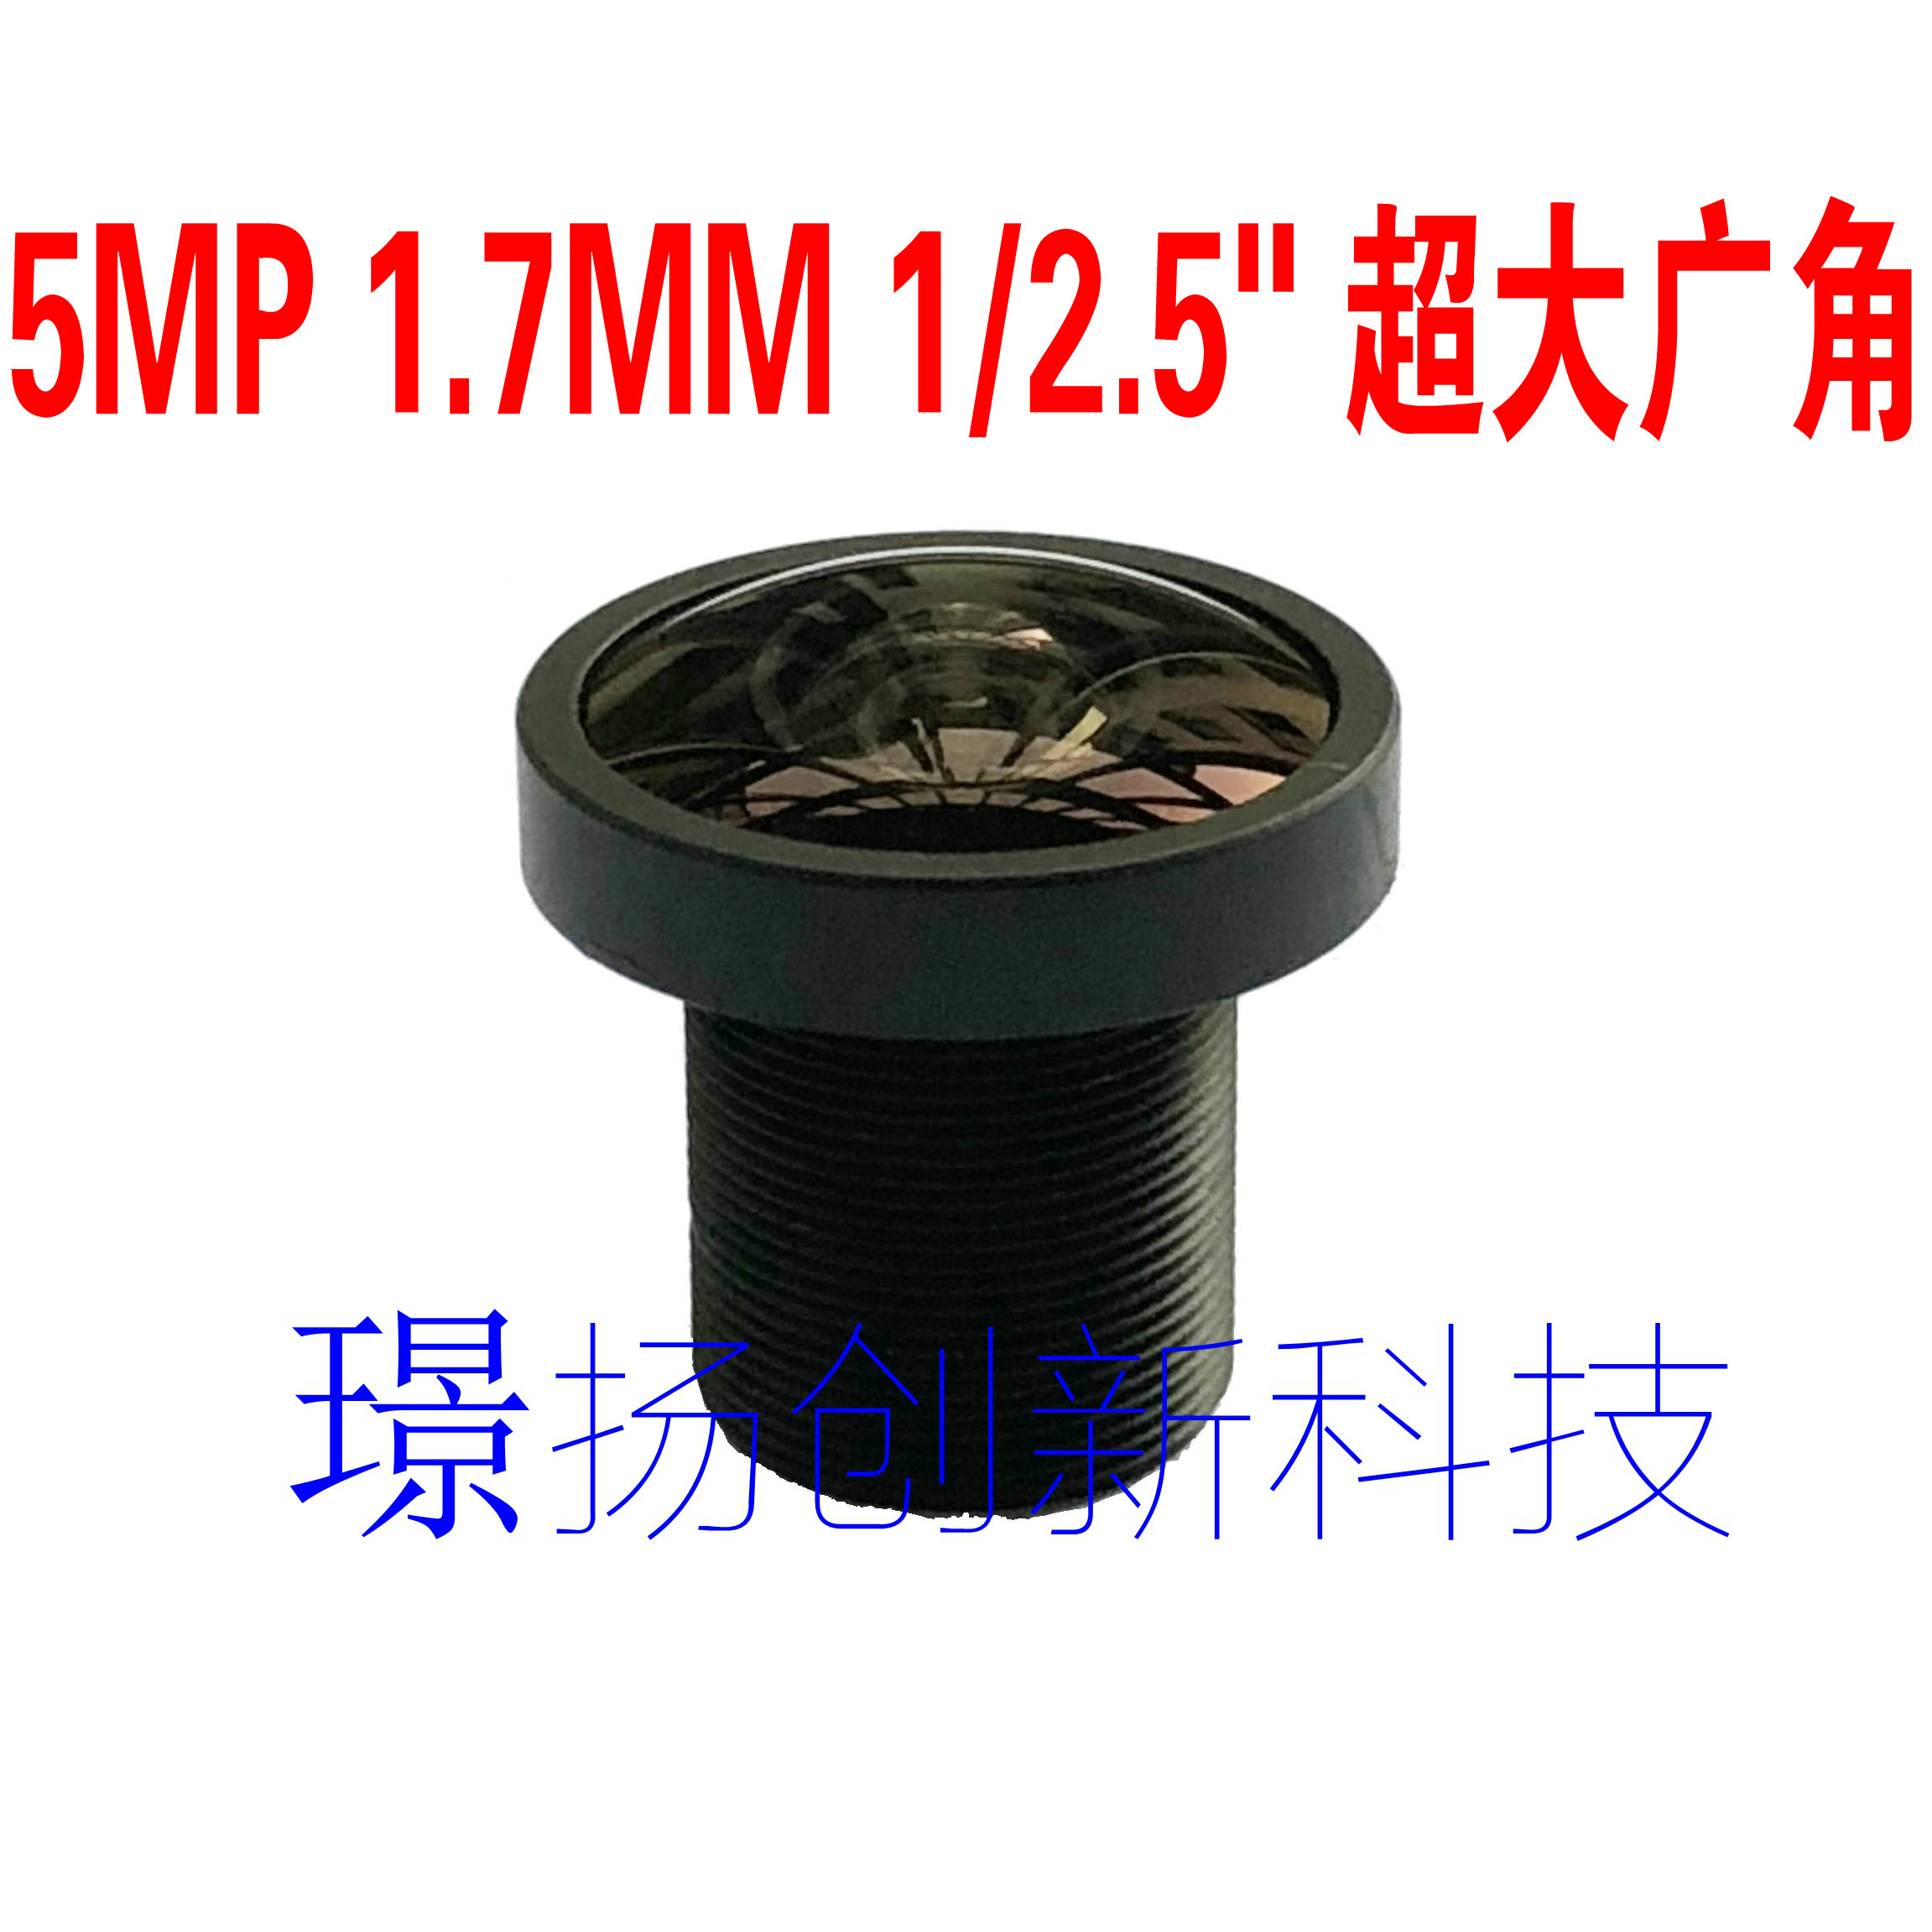 M12 1.8mm 5MP 1/2.5'' 180 Degree HD Wide Angle IR Sensitive FPV Camera Lens